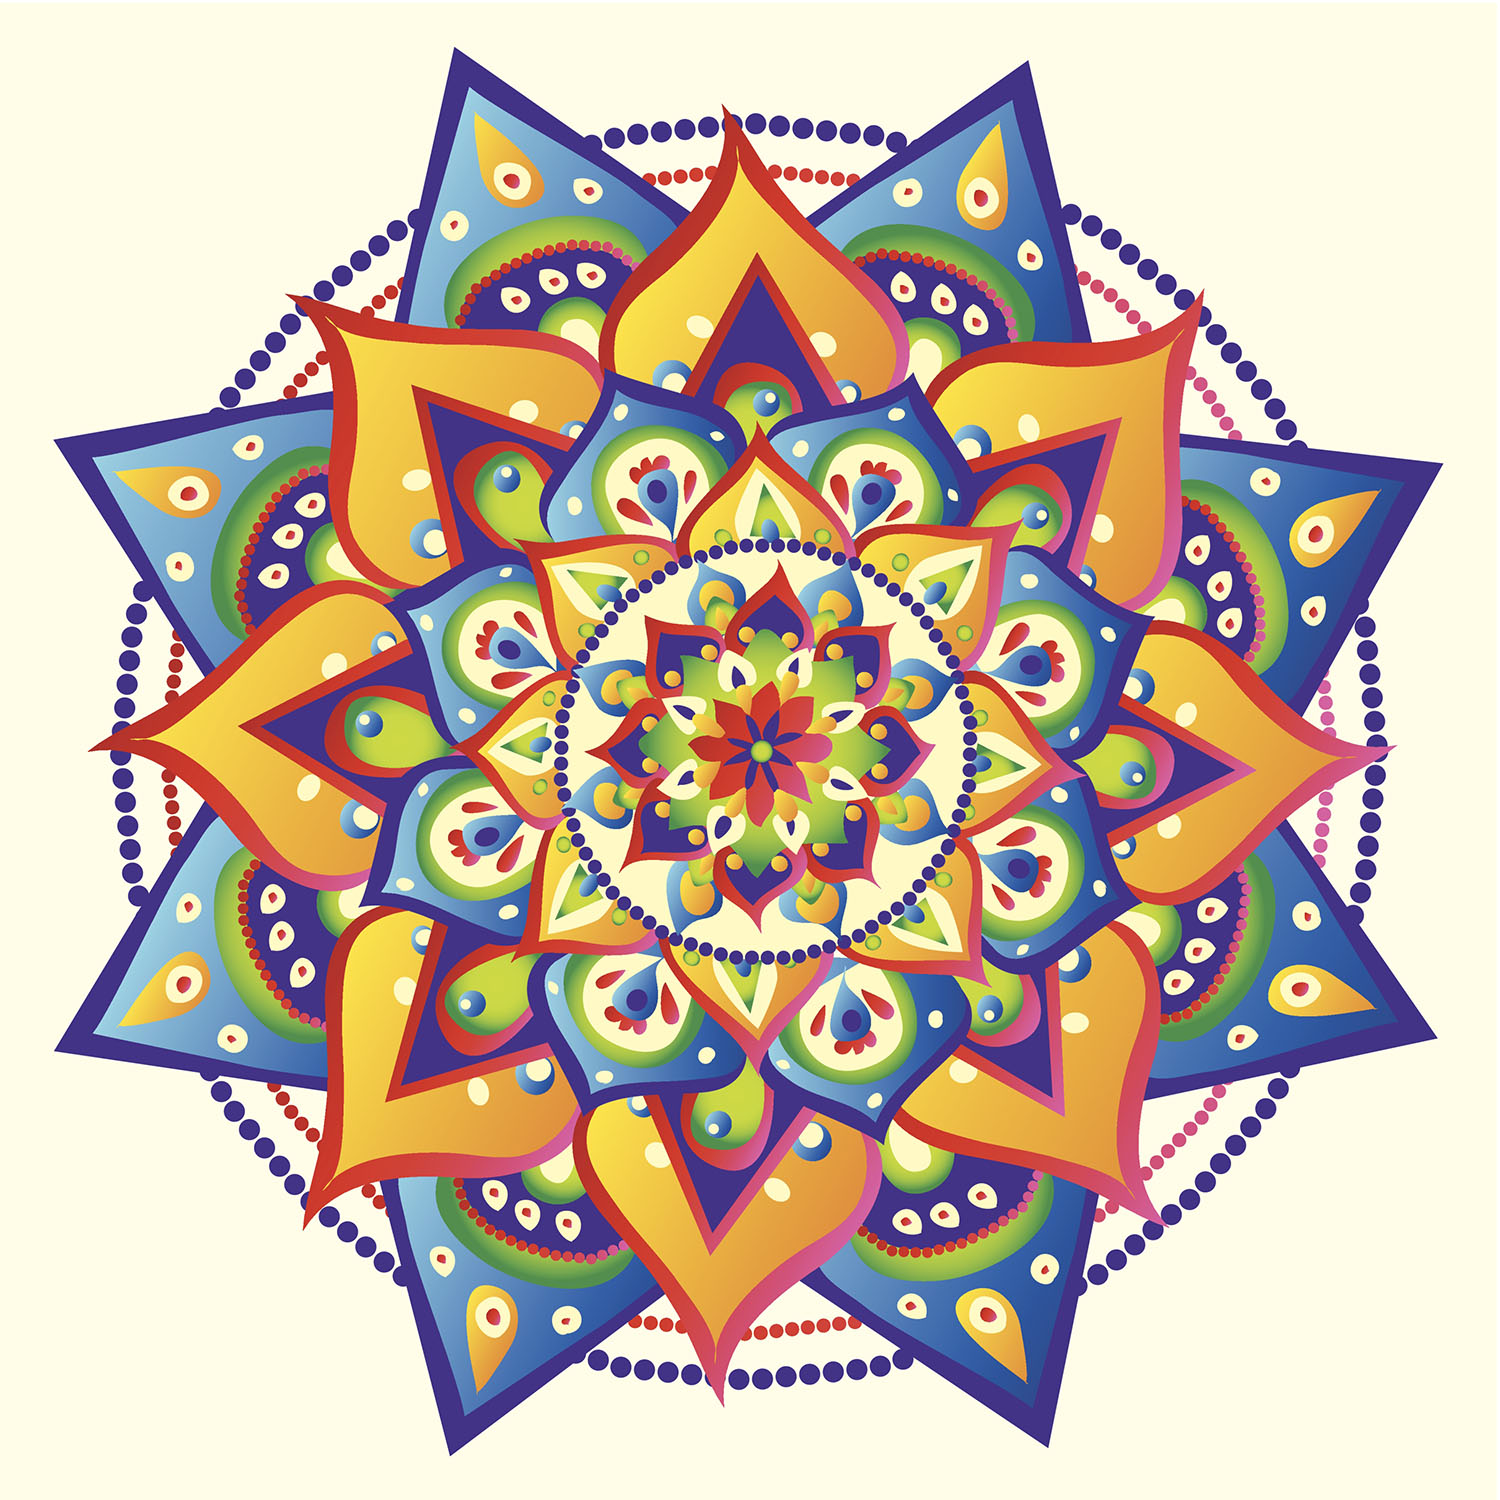 Coloring games like recolor - If You Like Mandala Coloring Pages You Will Like It